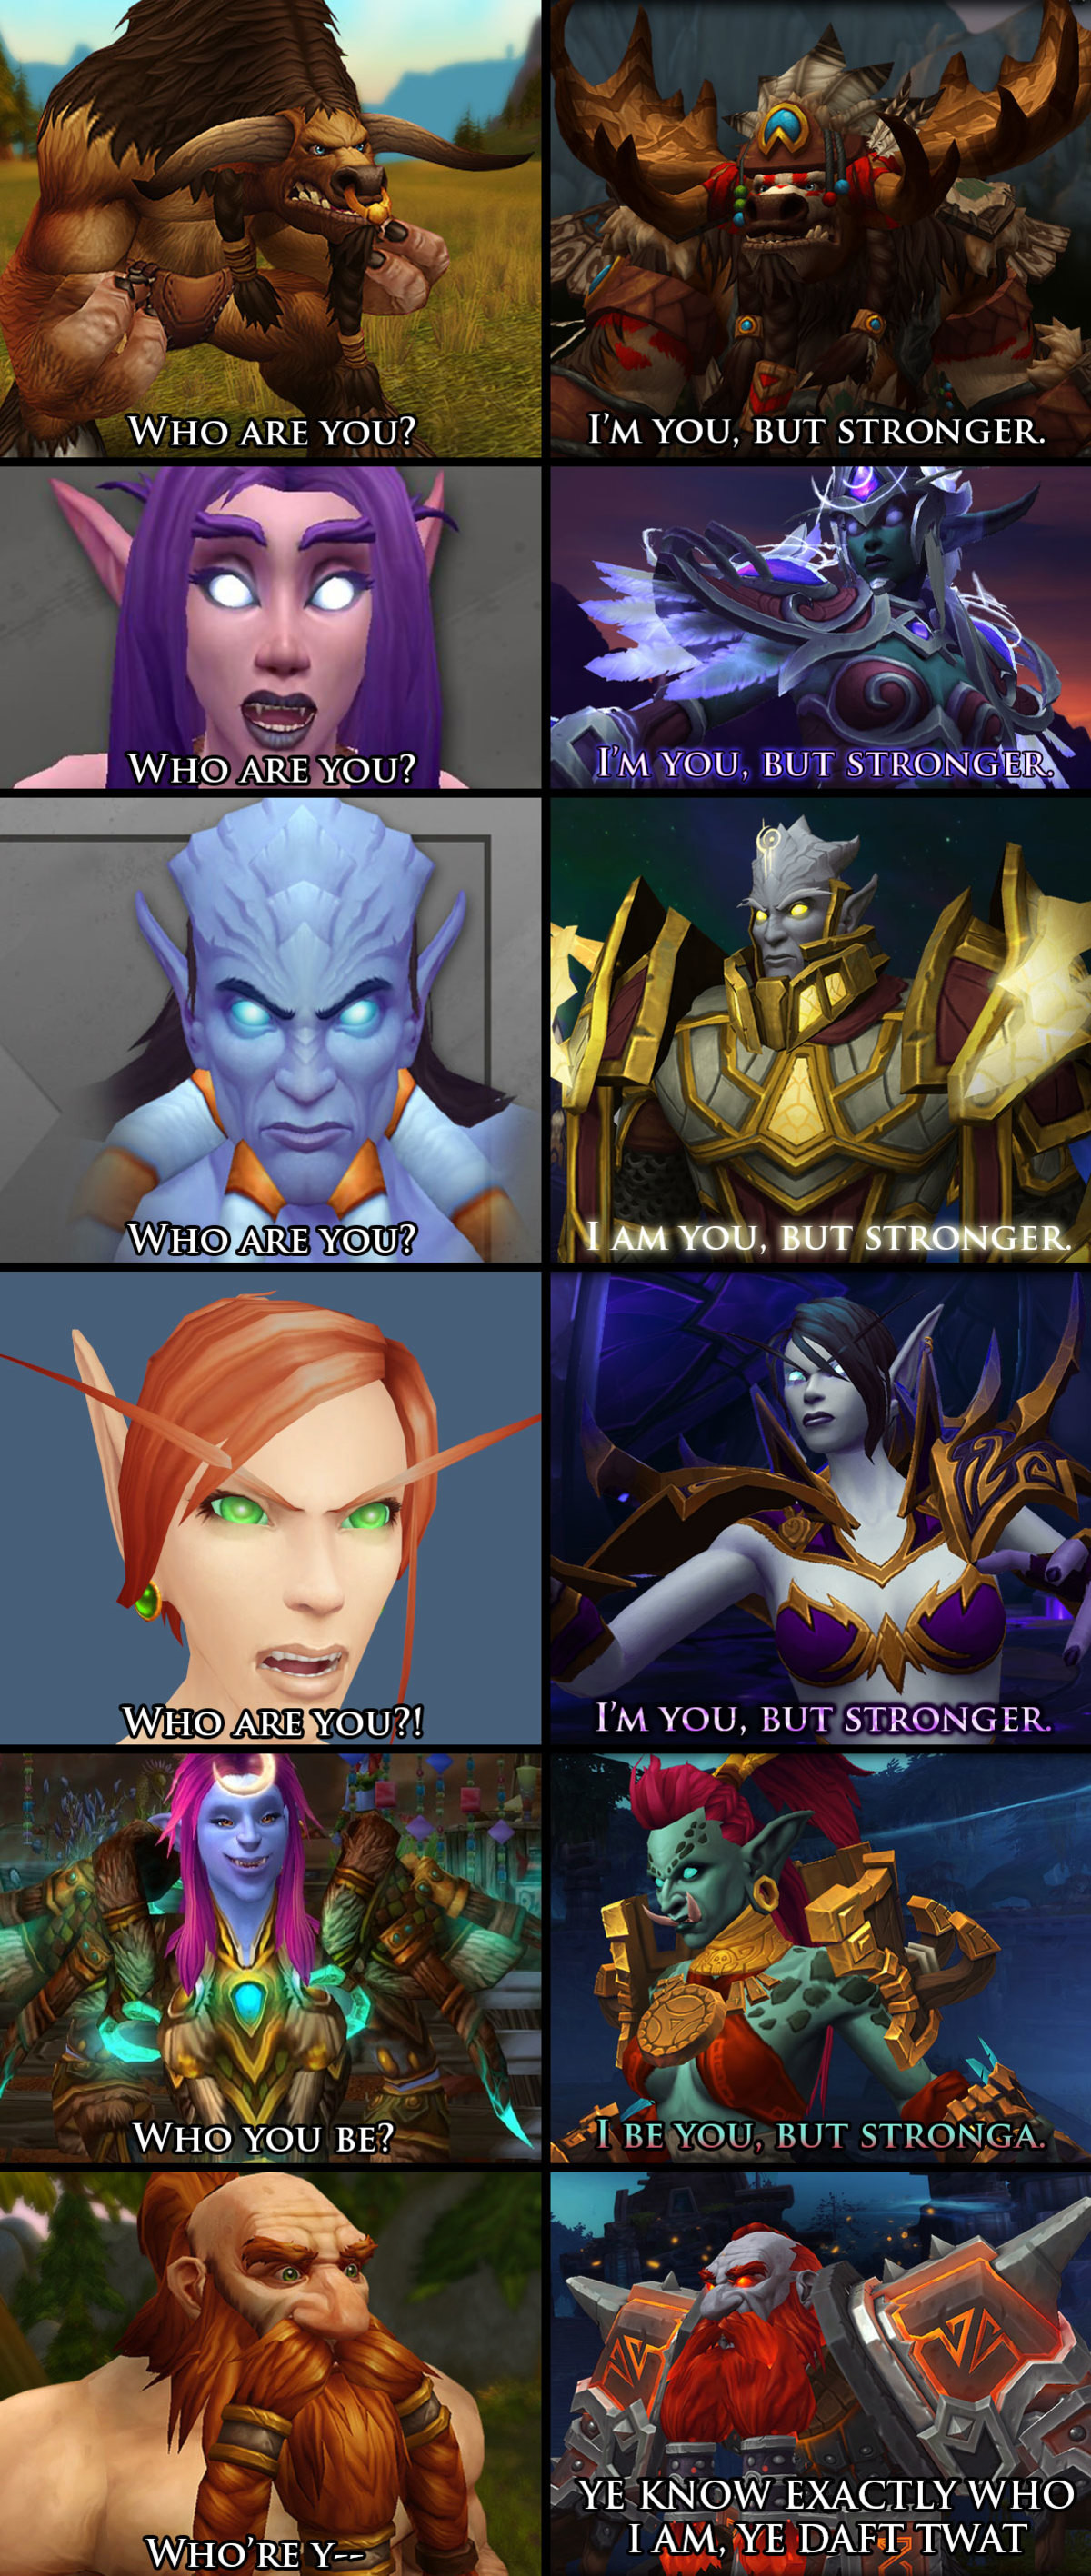 """the new allied races. . WHO ARE YOU? I' M YOU, BUT STRONGER. ARE nou? """" I M YOU, BUT STRONG L Yoo, HIT STORMI, PM YOU, BUT STRONG ER, wut? log BE? RF YOU. NIT I"""